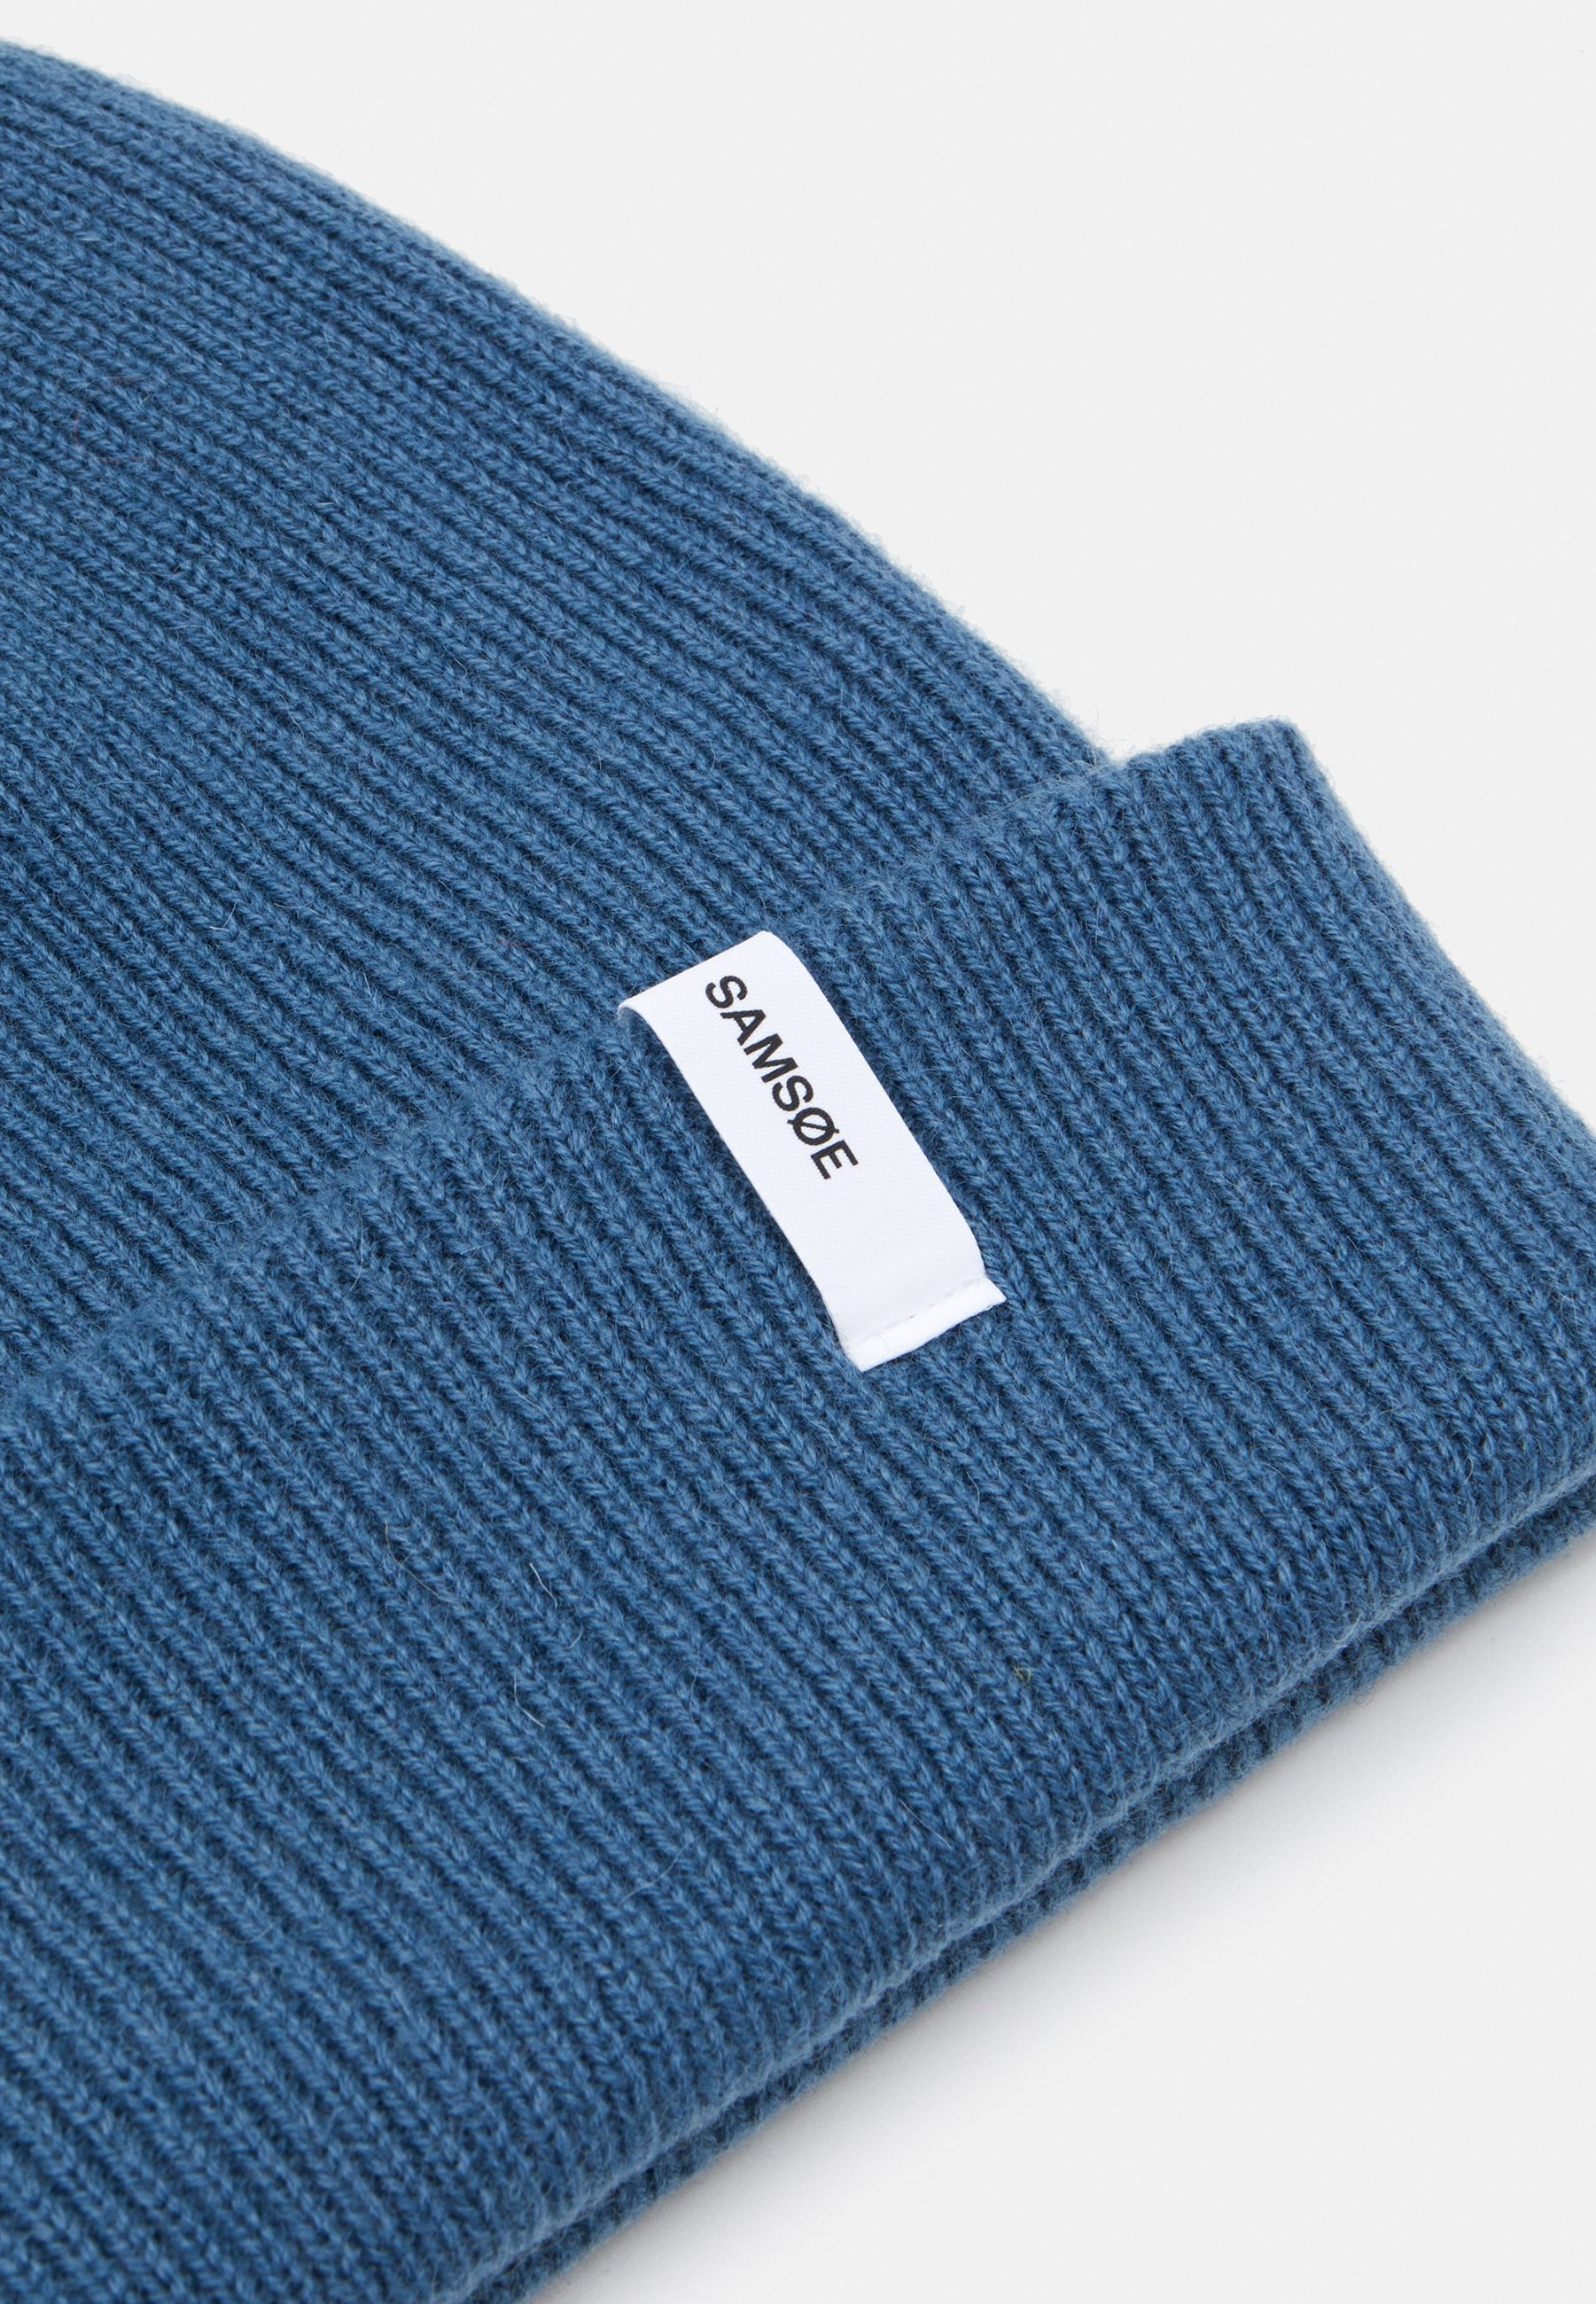 Samsøe Samsøe THE BEANIE  - Mütze - real teal/blau - Herrenaccessoires jKPid